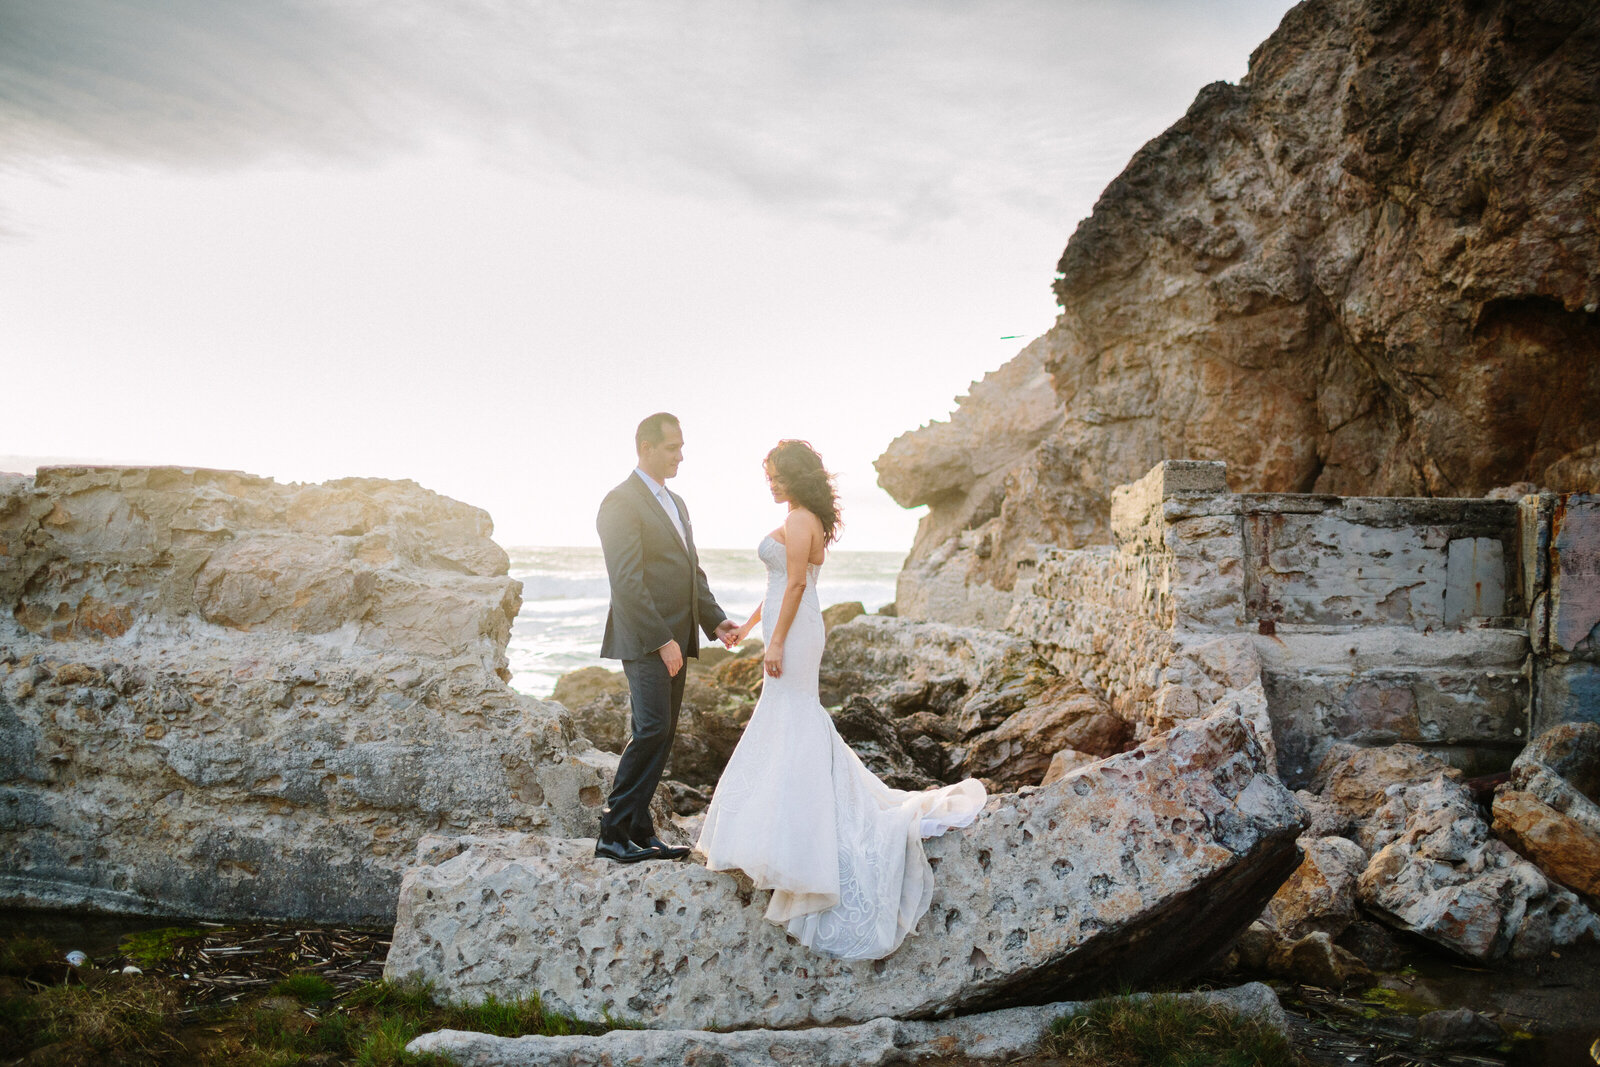 larissa-cleveland-elope-eleopement-intimate-wedding-photographer-san-francisco-napa-carmel-068